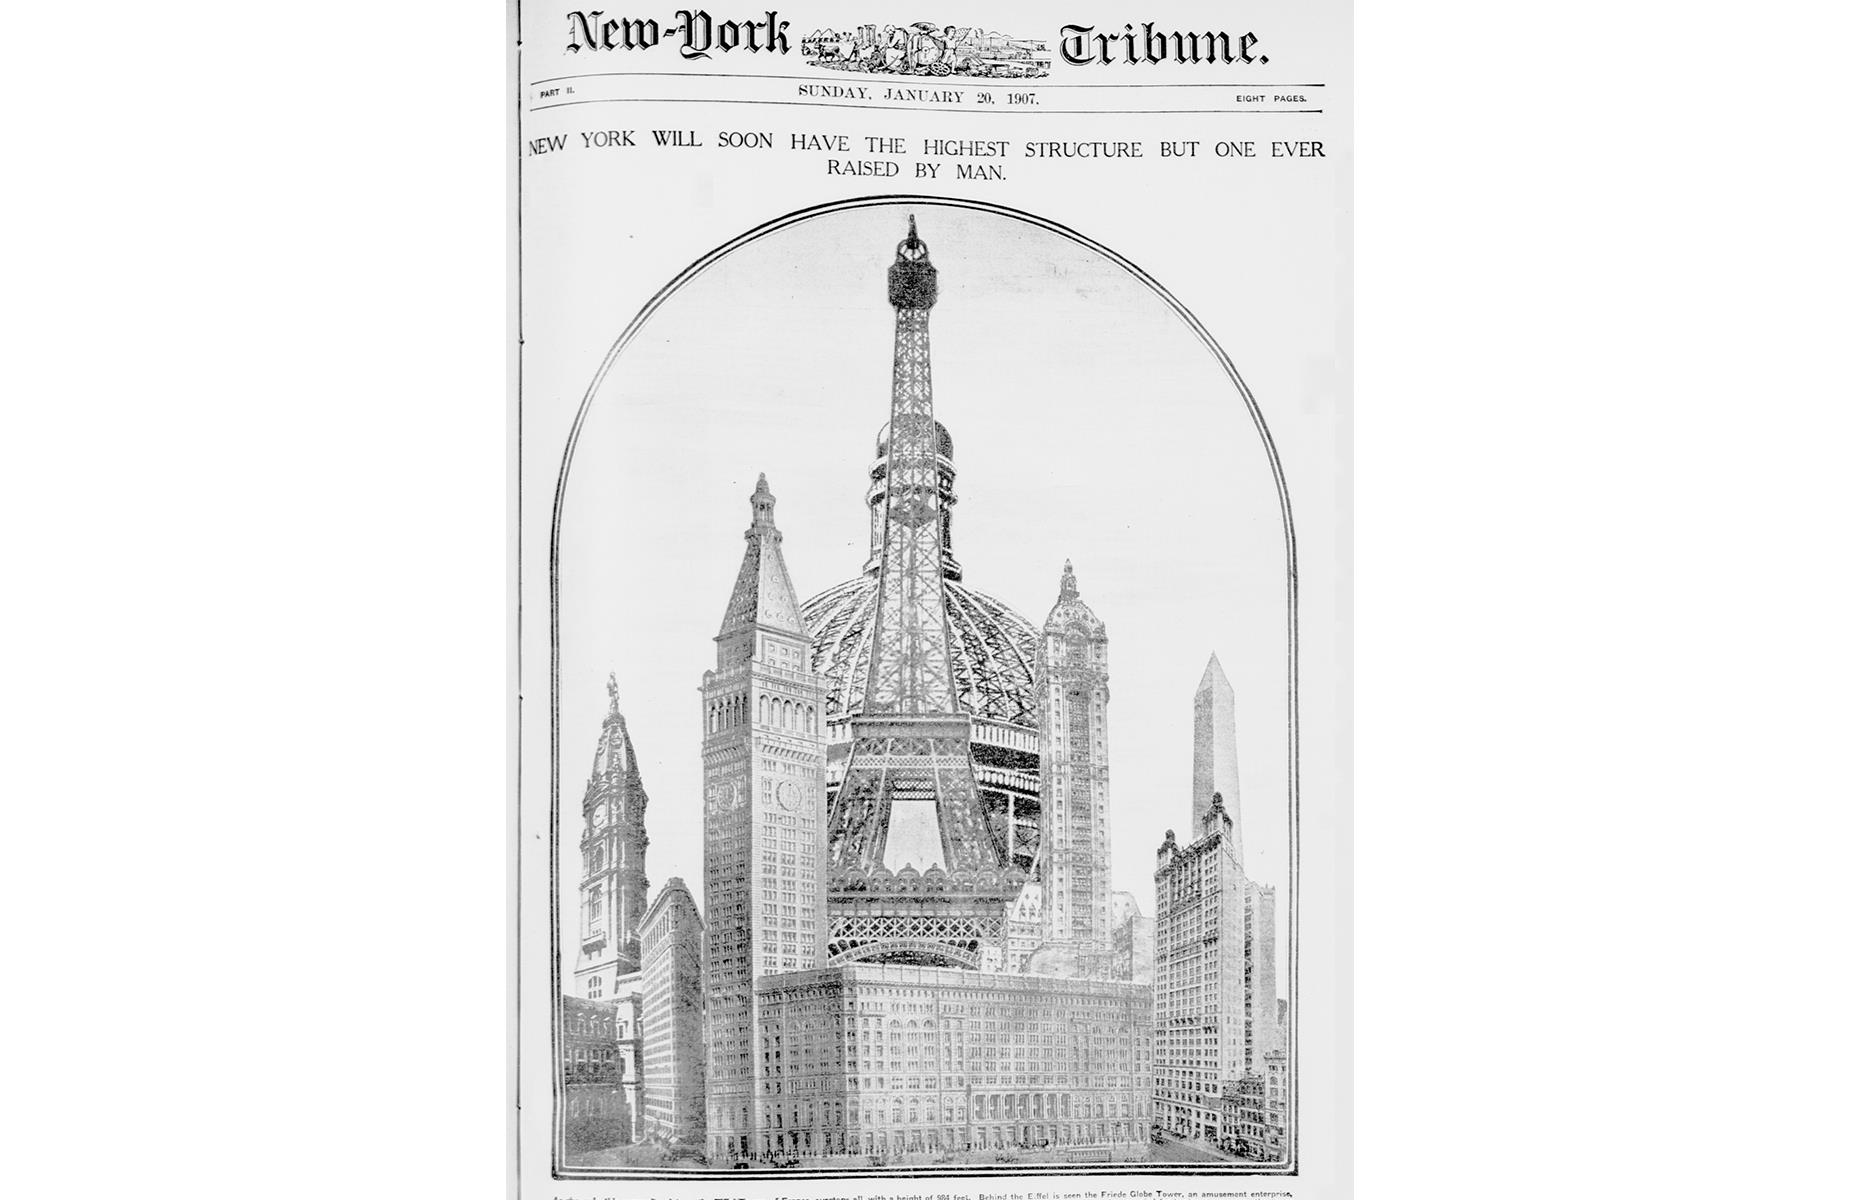 Slide 19 of 28: Coney Island draws millions of visitors each year with its rides, food stands and sandy beach –and another striking structure almost joined its heady mix of amusements. In the early 1900s, architect Samuel Friede announced plans for the Coney Island Globe Tower (pictured). The 700-foot (213m) building would have included an enormous sphere, containing everything from gardens and restaurants to a circus and a huge theme park.